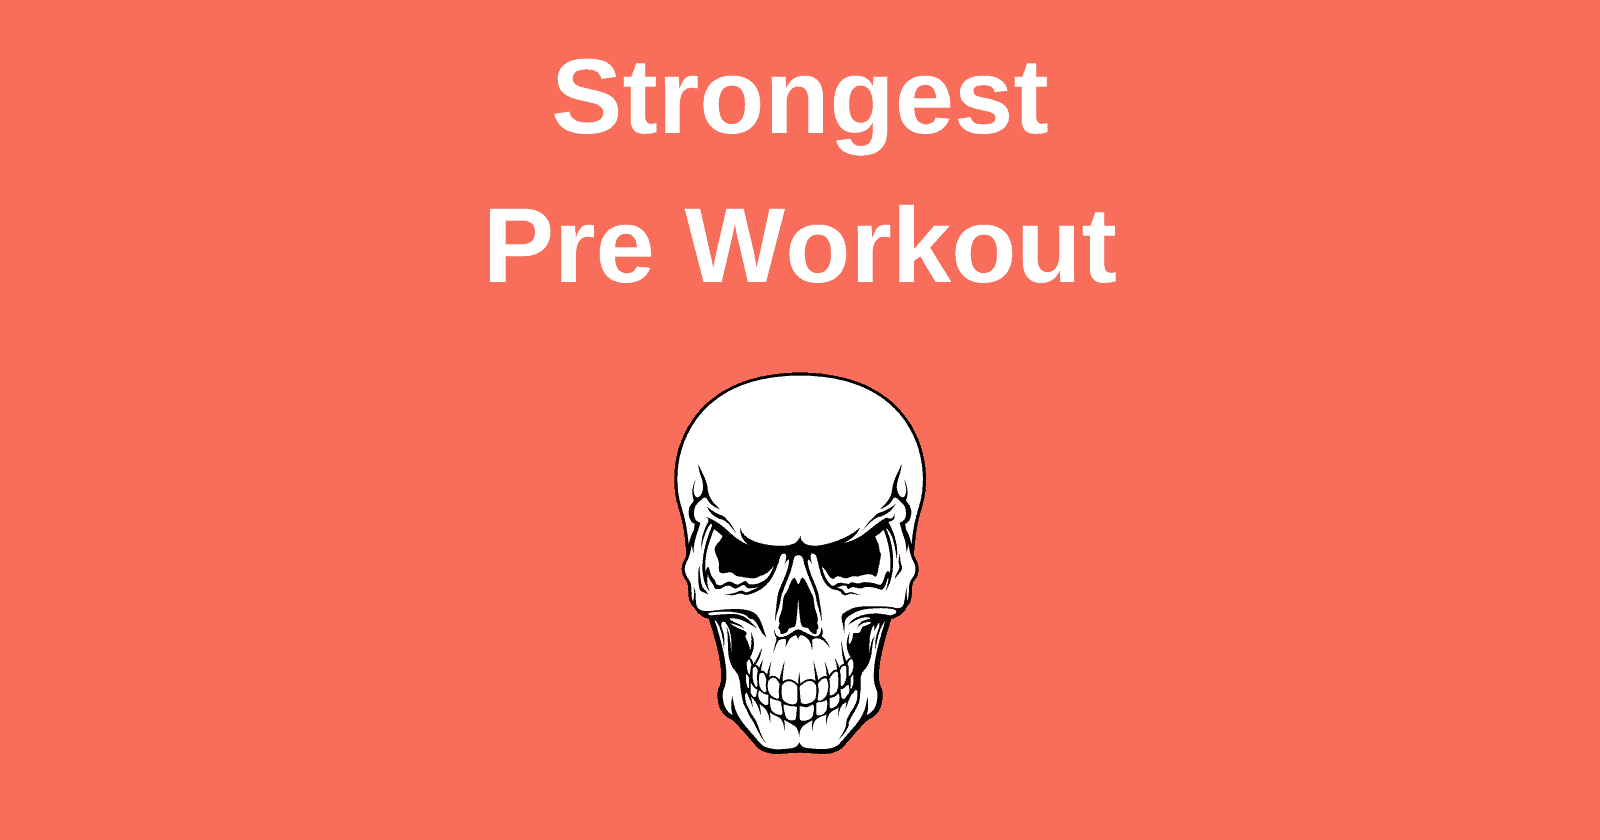 Strongest Pre Workout